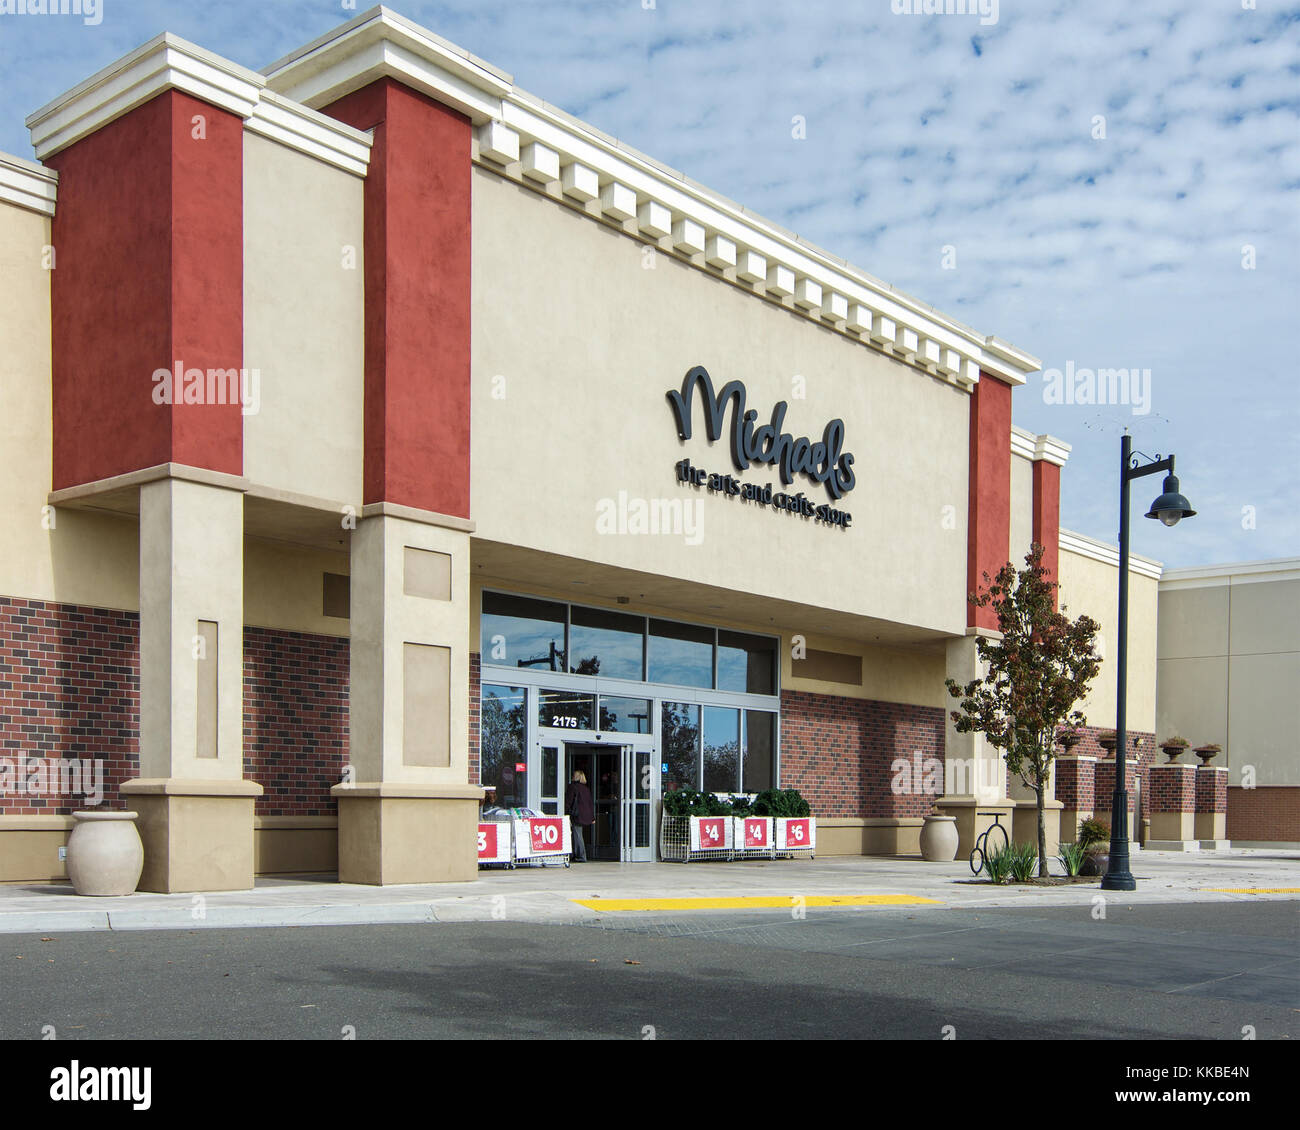 Crafts Store Stock Photos & Crafts Store Stock Images - Alamy